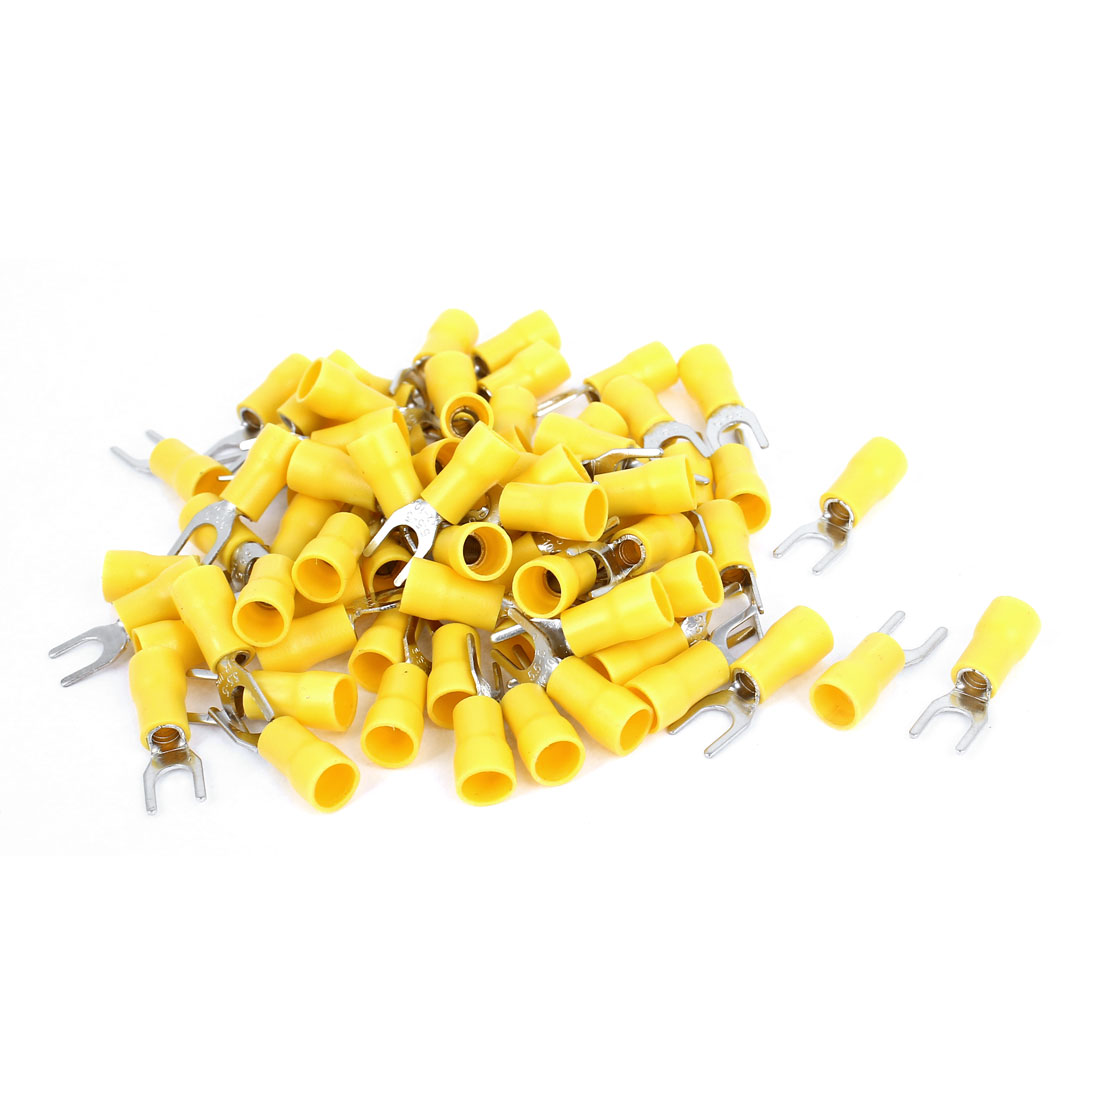 95 Pcs SV5.5-5 12-10 AWG Fork Type Insulated Cable Terminals Connector Yellow